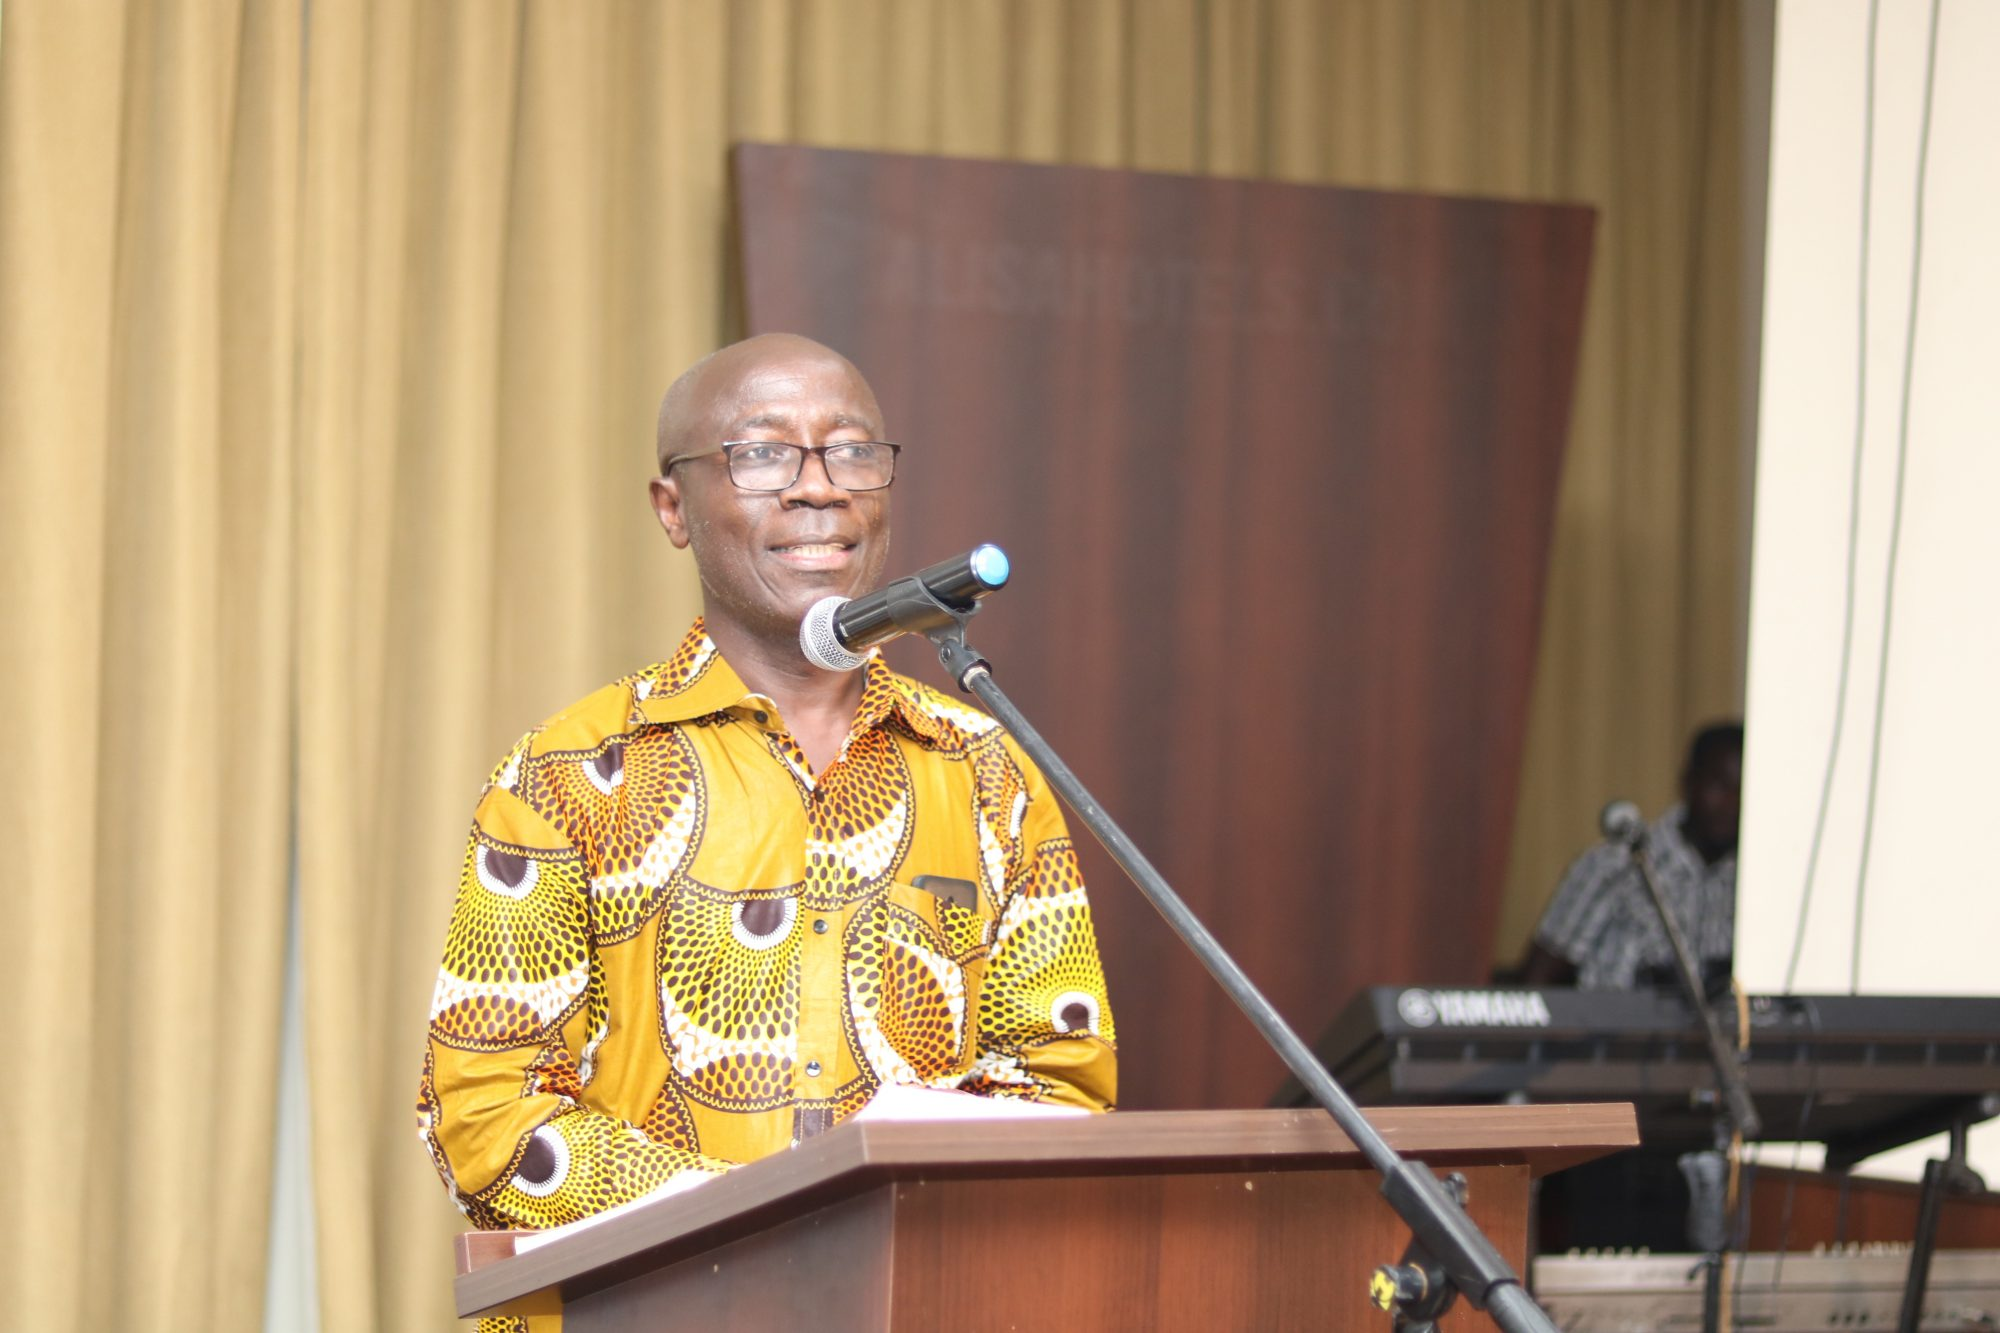 Robert Peprah-Gyamfi at a book launch. Copyright 2019